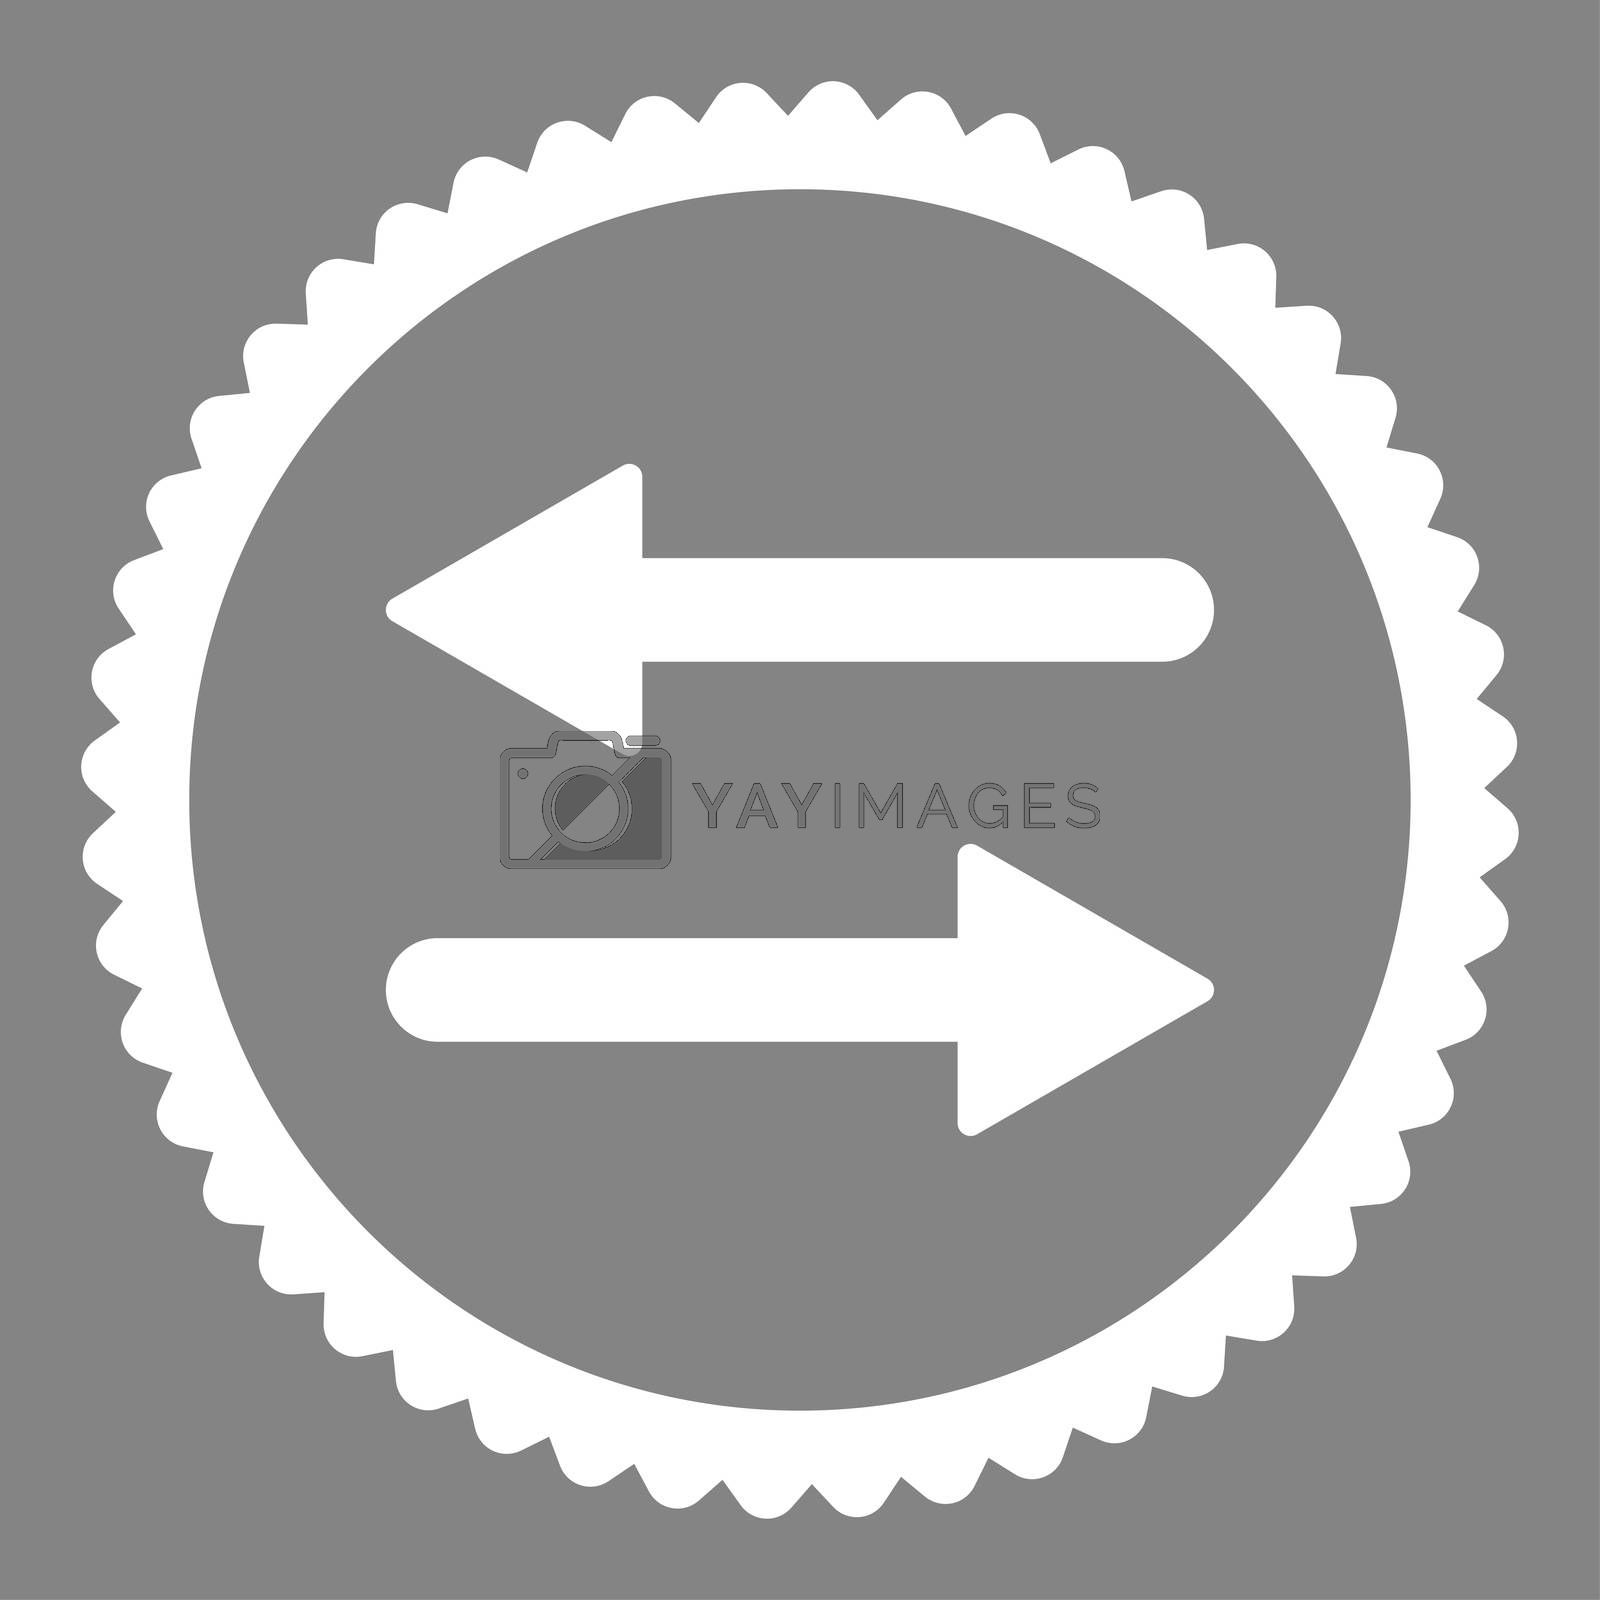 Arrows Exchange flat white color round stamp icon by Aha-Soft